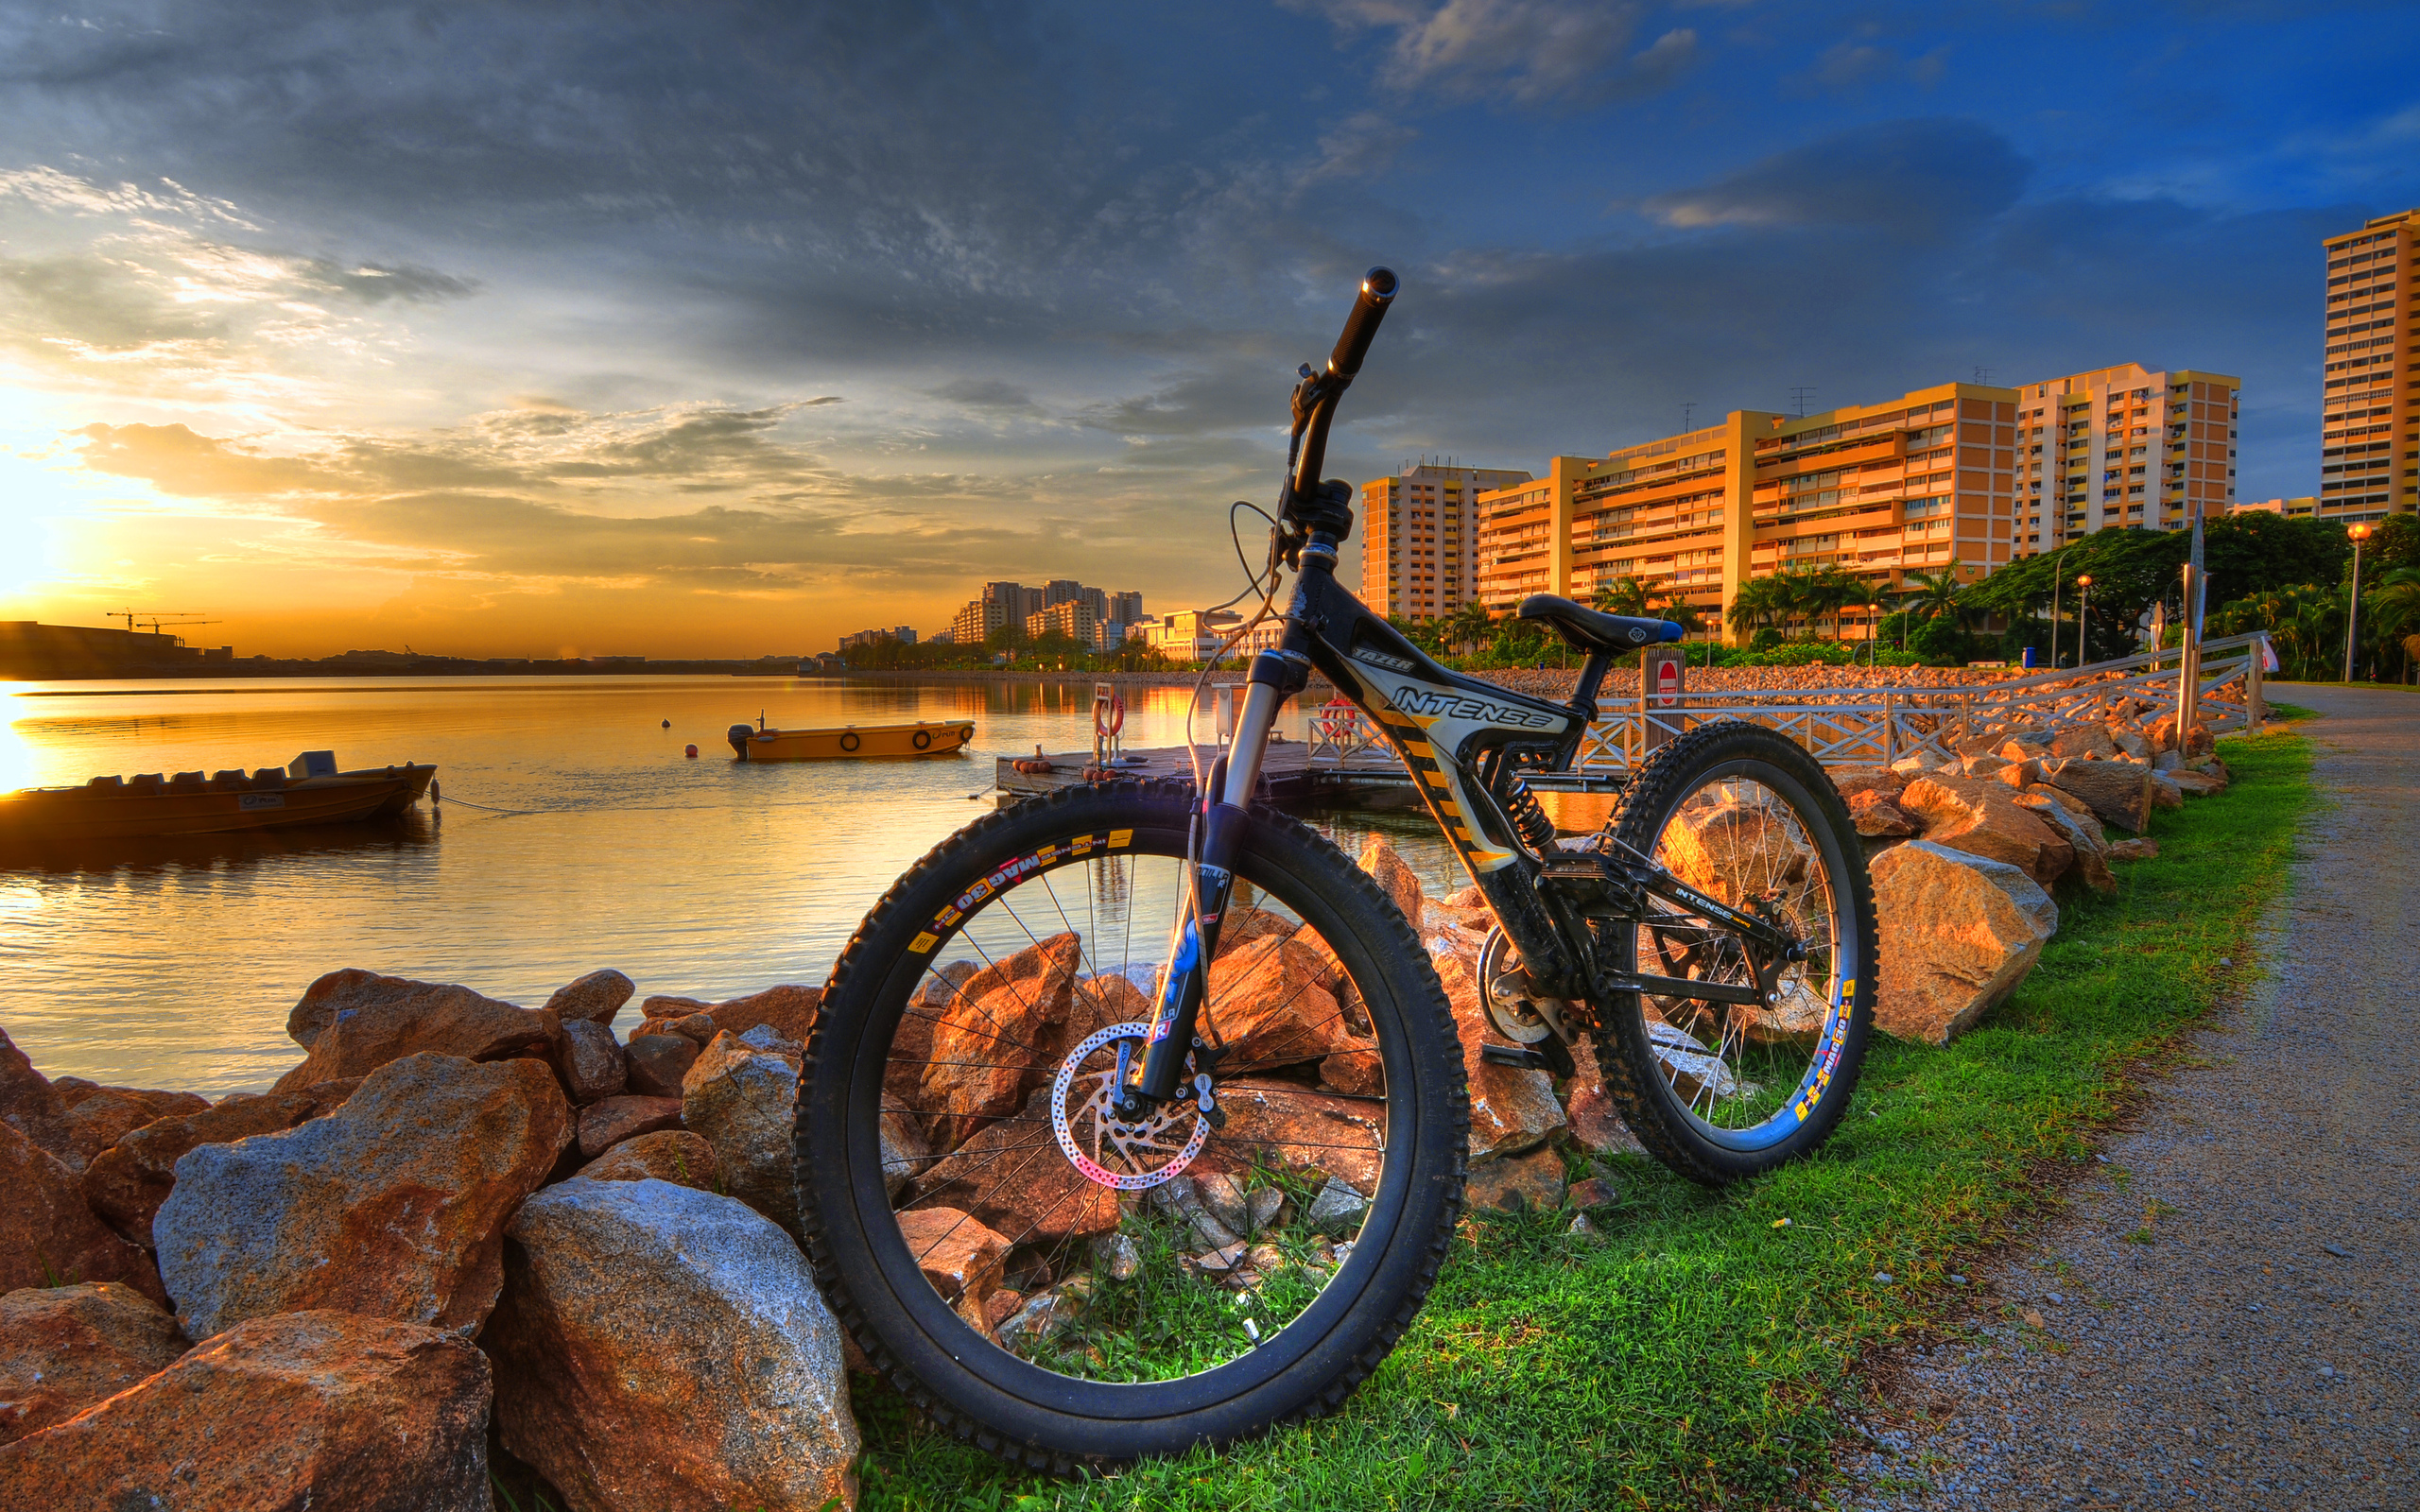 Bicycle Full HD Wallpaper and Background 2560x1600 ID223138